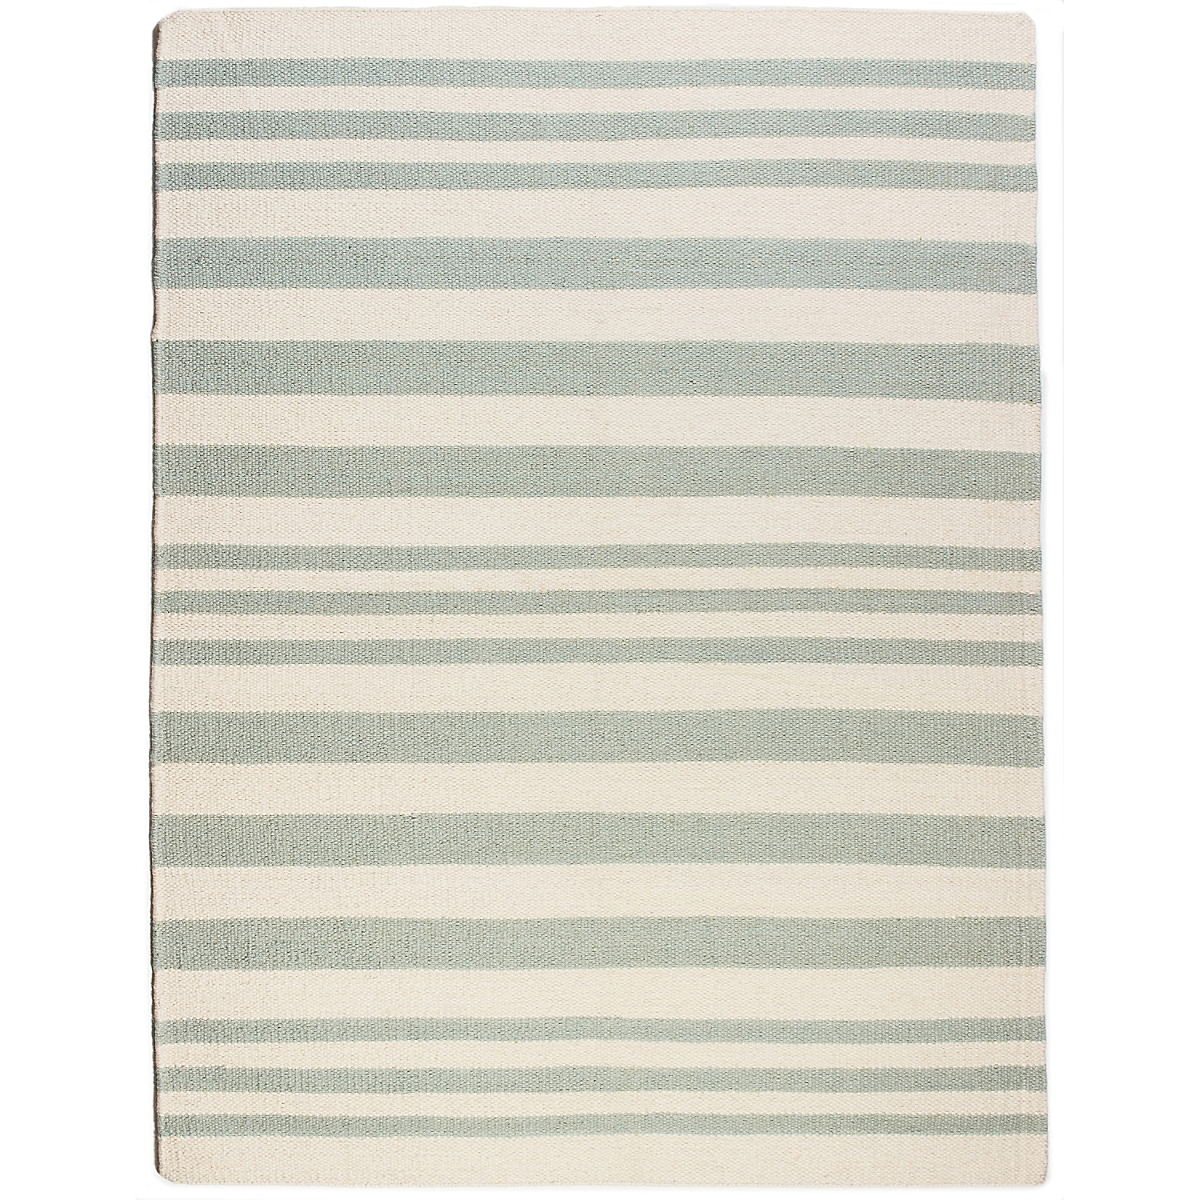 St. Augustine Wool Berber Striped Rug